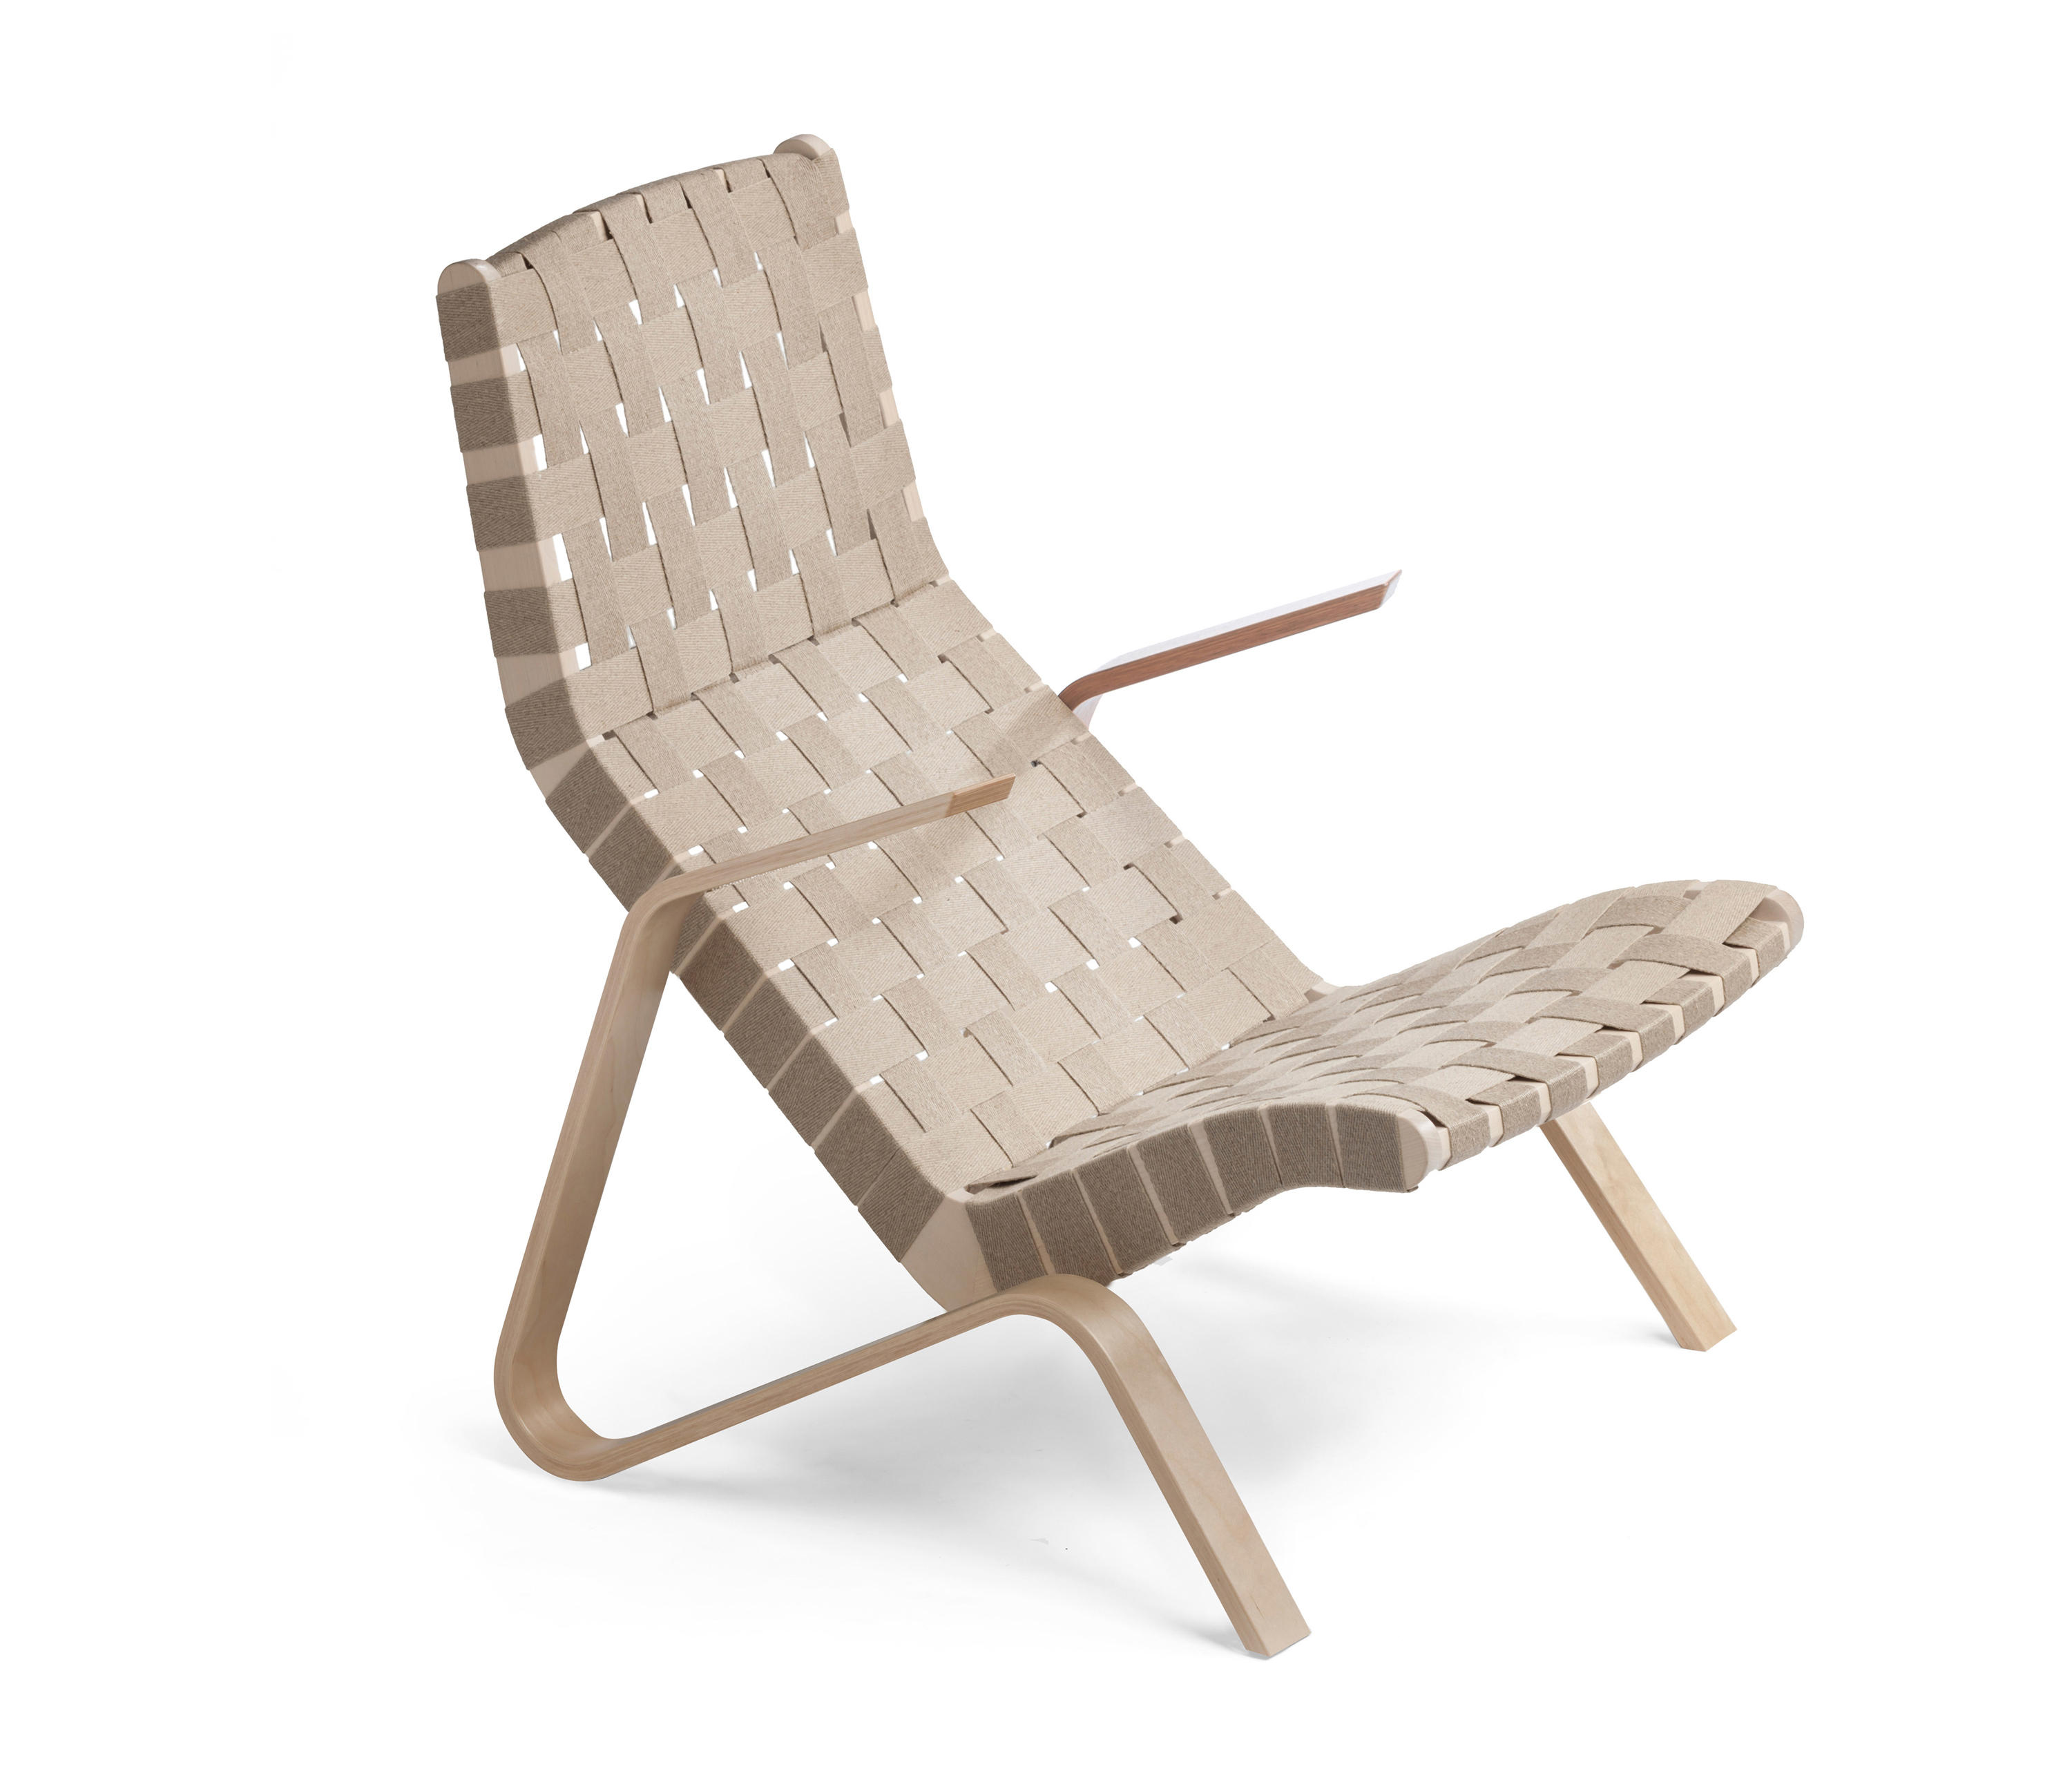 GRASSHOPPER LOUNGE CHAIR Lounge chairs from Tetrimäki